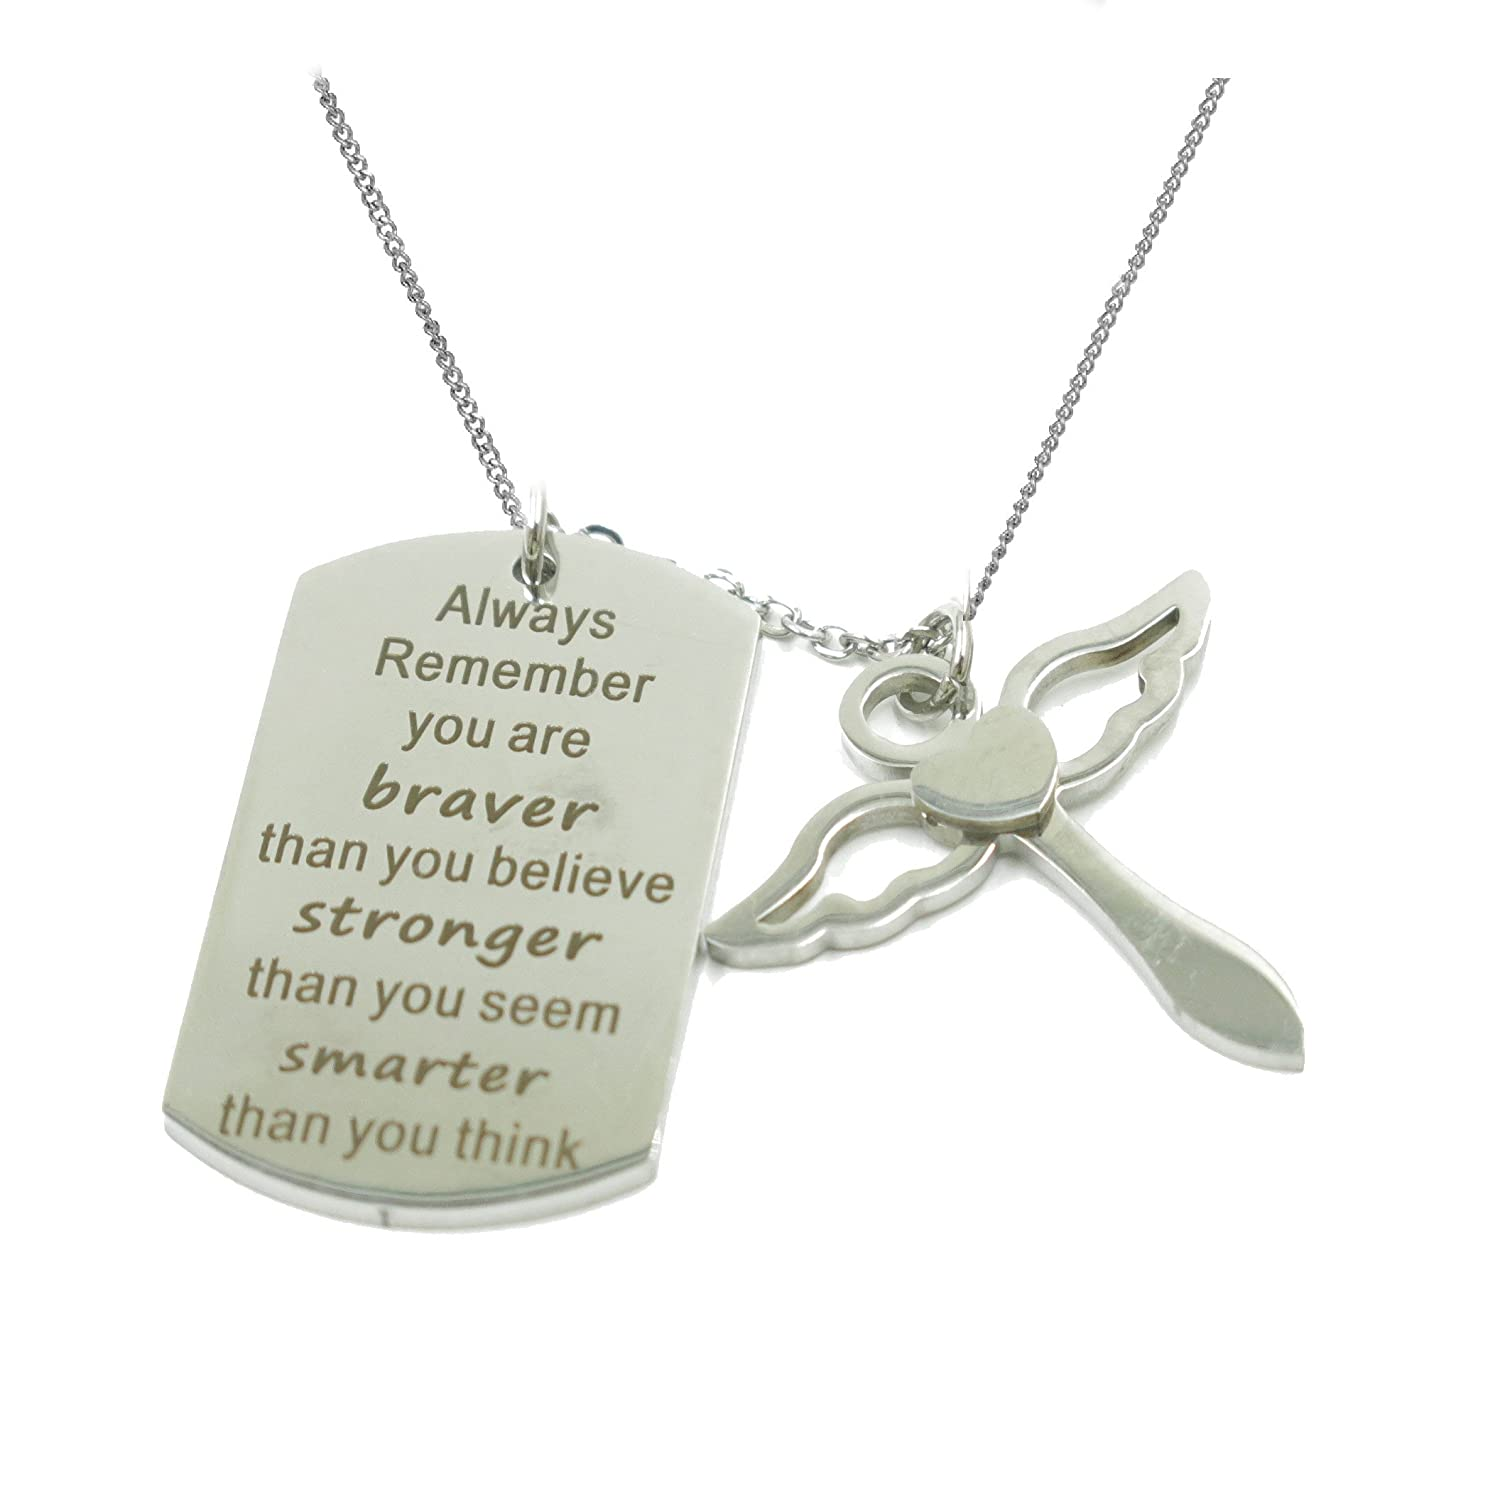 Fashion Always Remember You are Braver Than You Believe Dog Tag Cross Pendant Necklace WYBAM_SP WYFYSP093